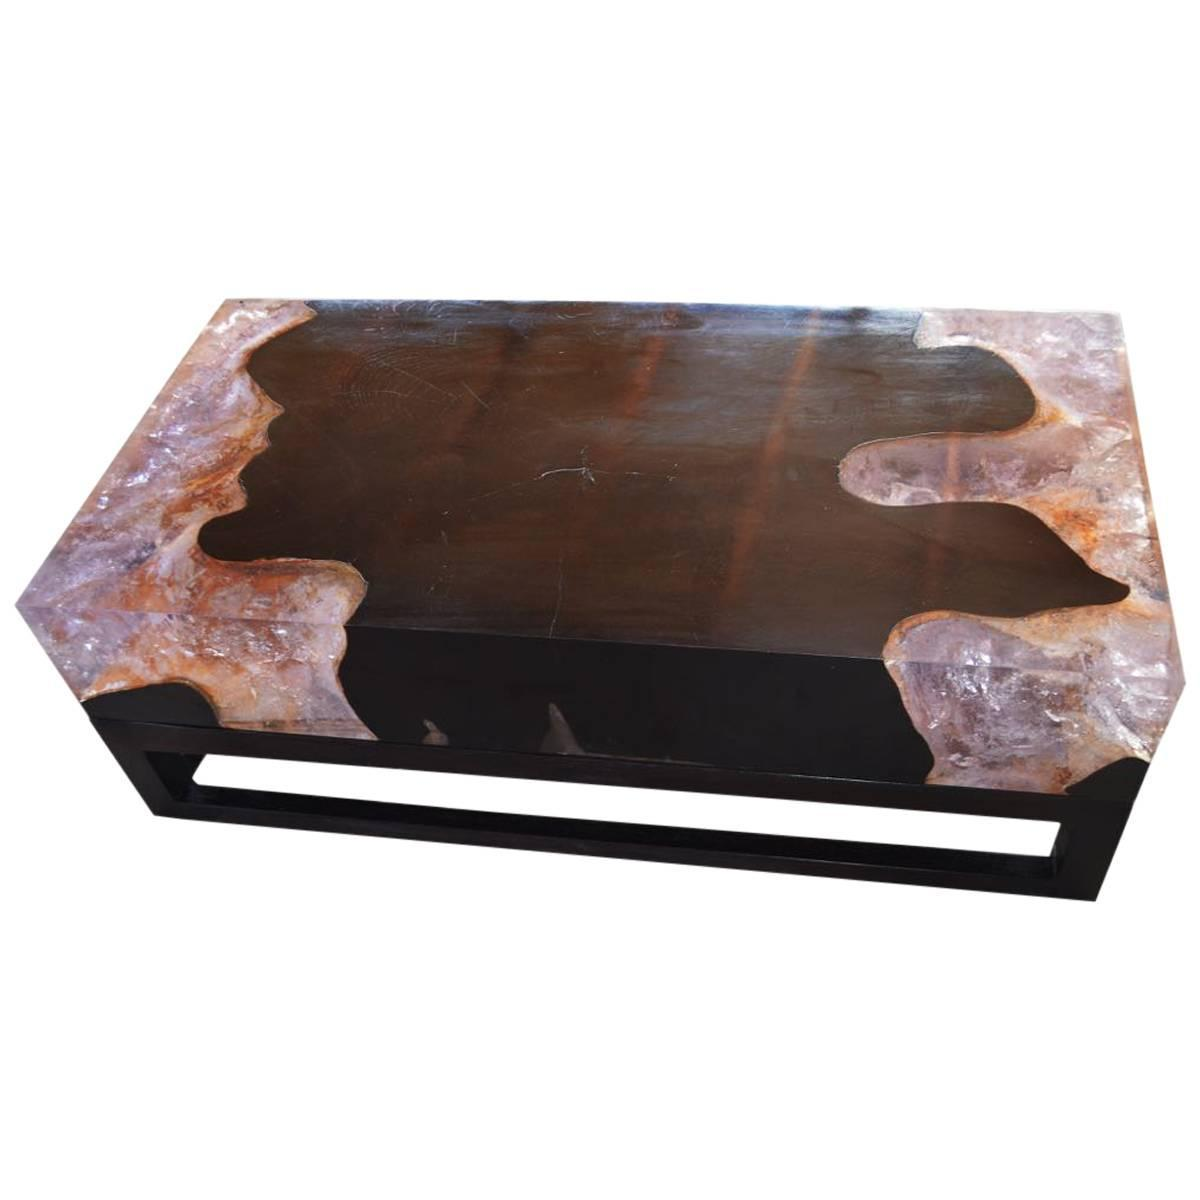 Cracked Resin Coffee Table At 1stdibs